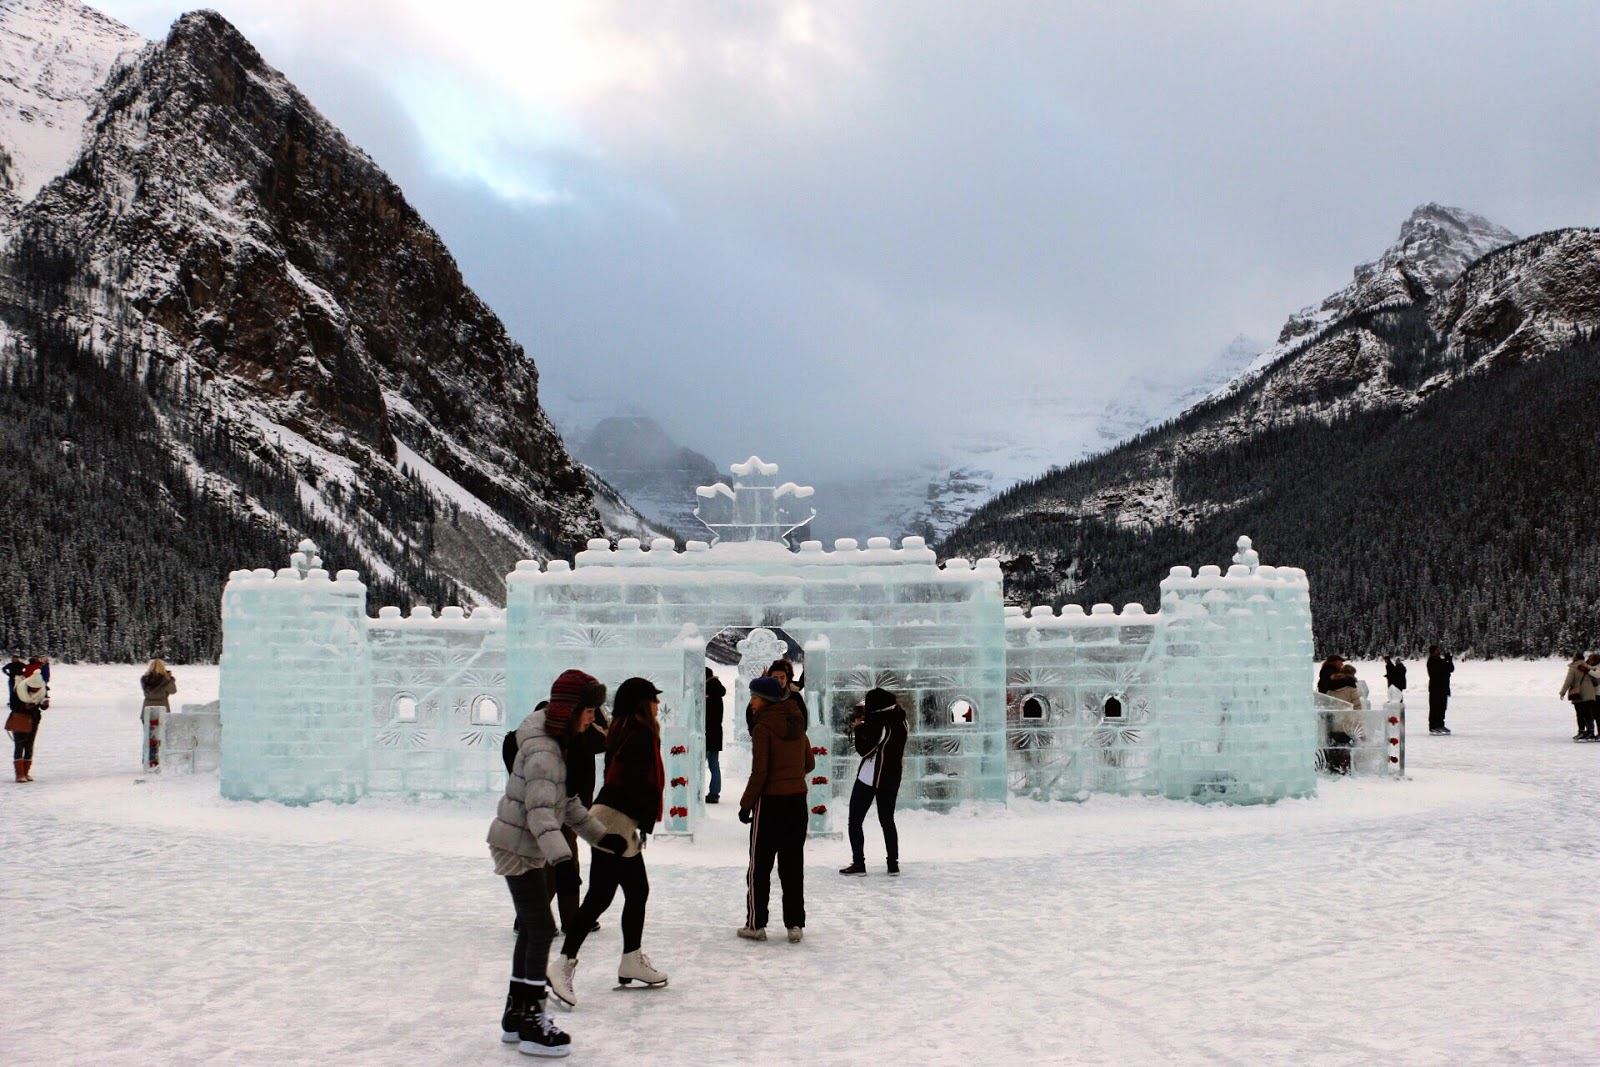 Ice castle and Ice-skating at Lake Louise in Alberta Canada by Jessica Mack aka SweetDivergence